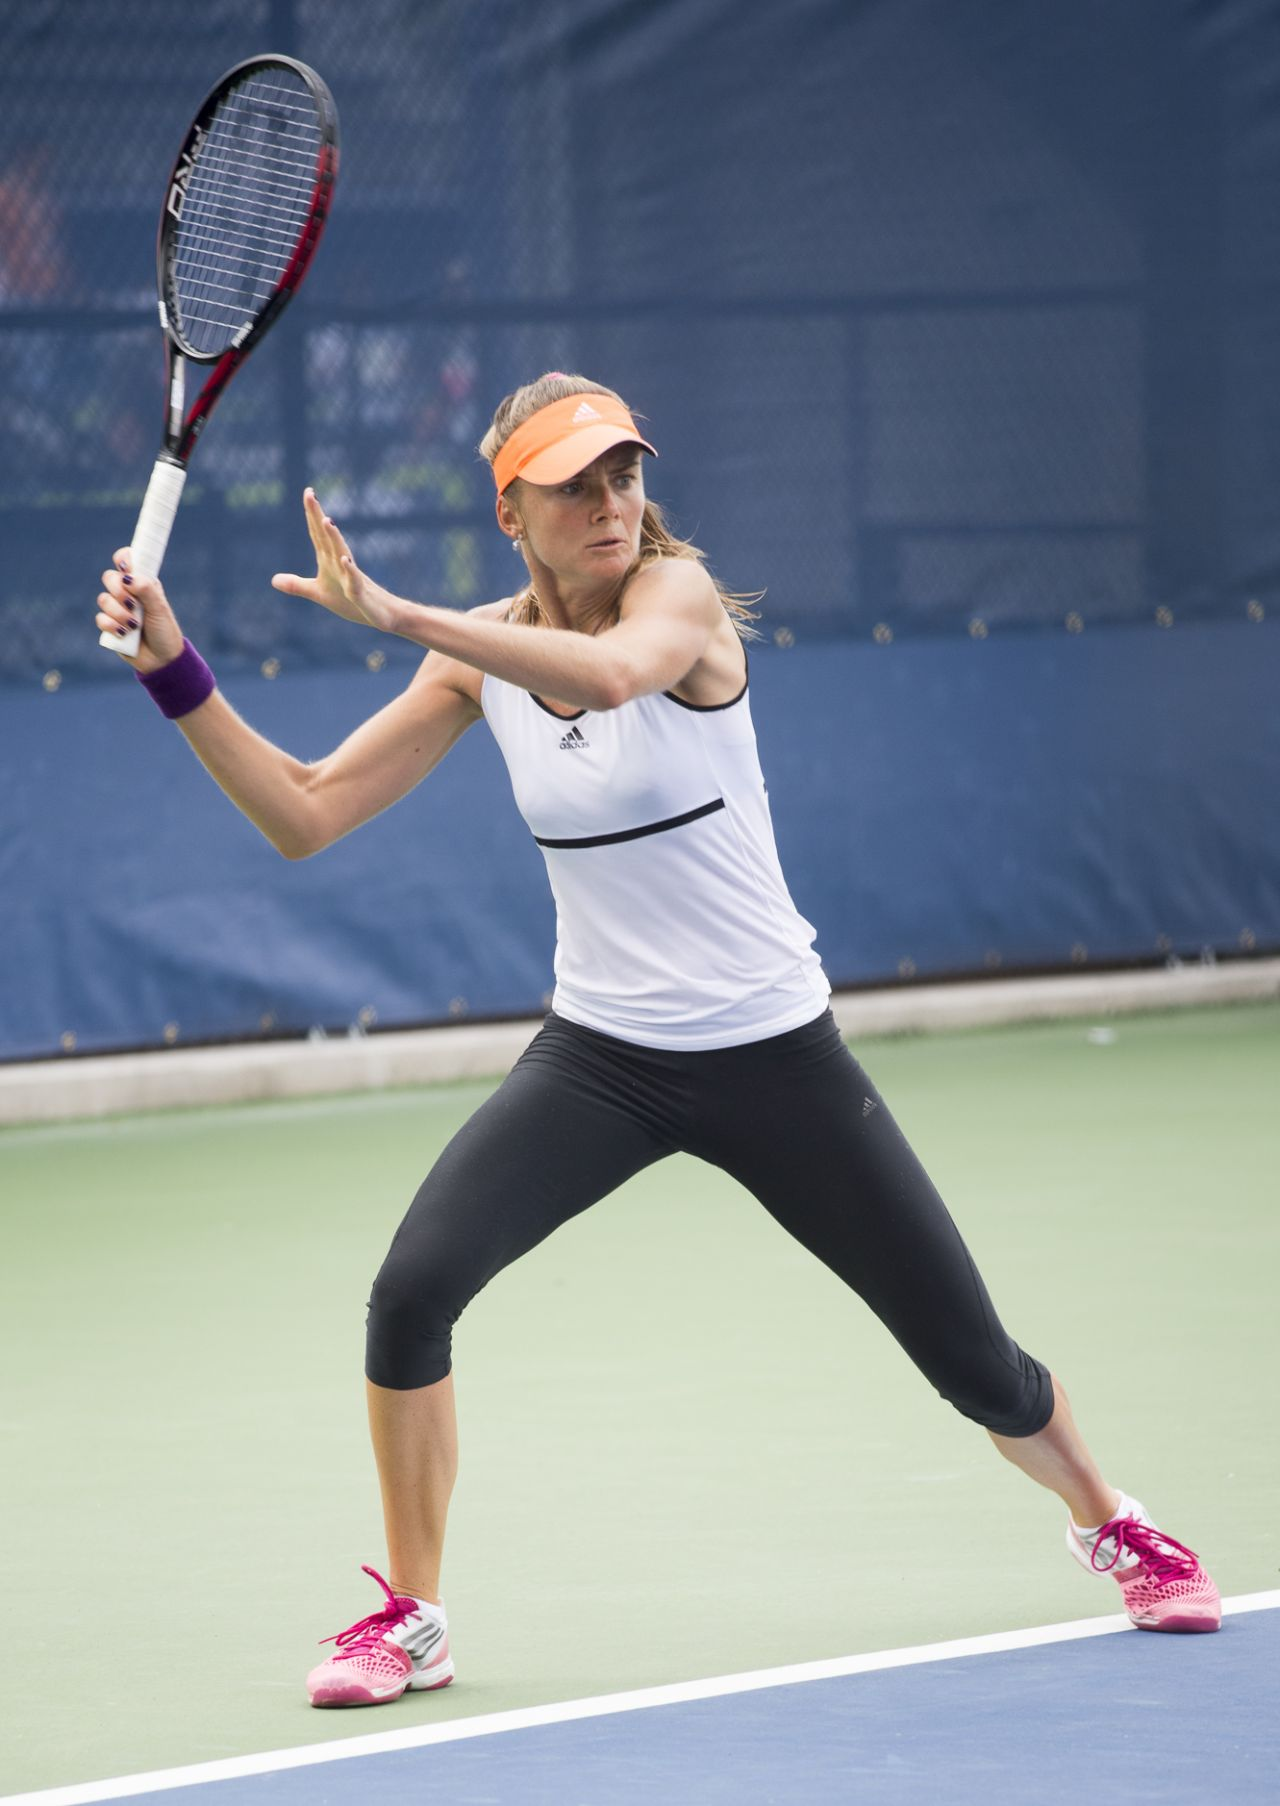 Daniela Hantuchova Practice at the 2014 US Open in New York City